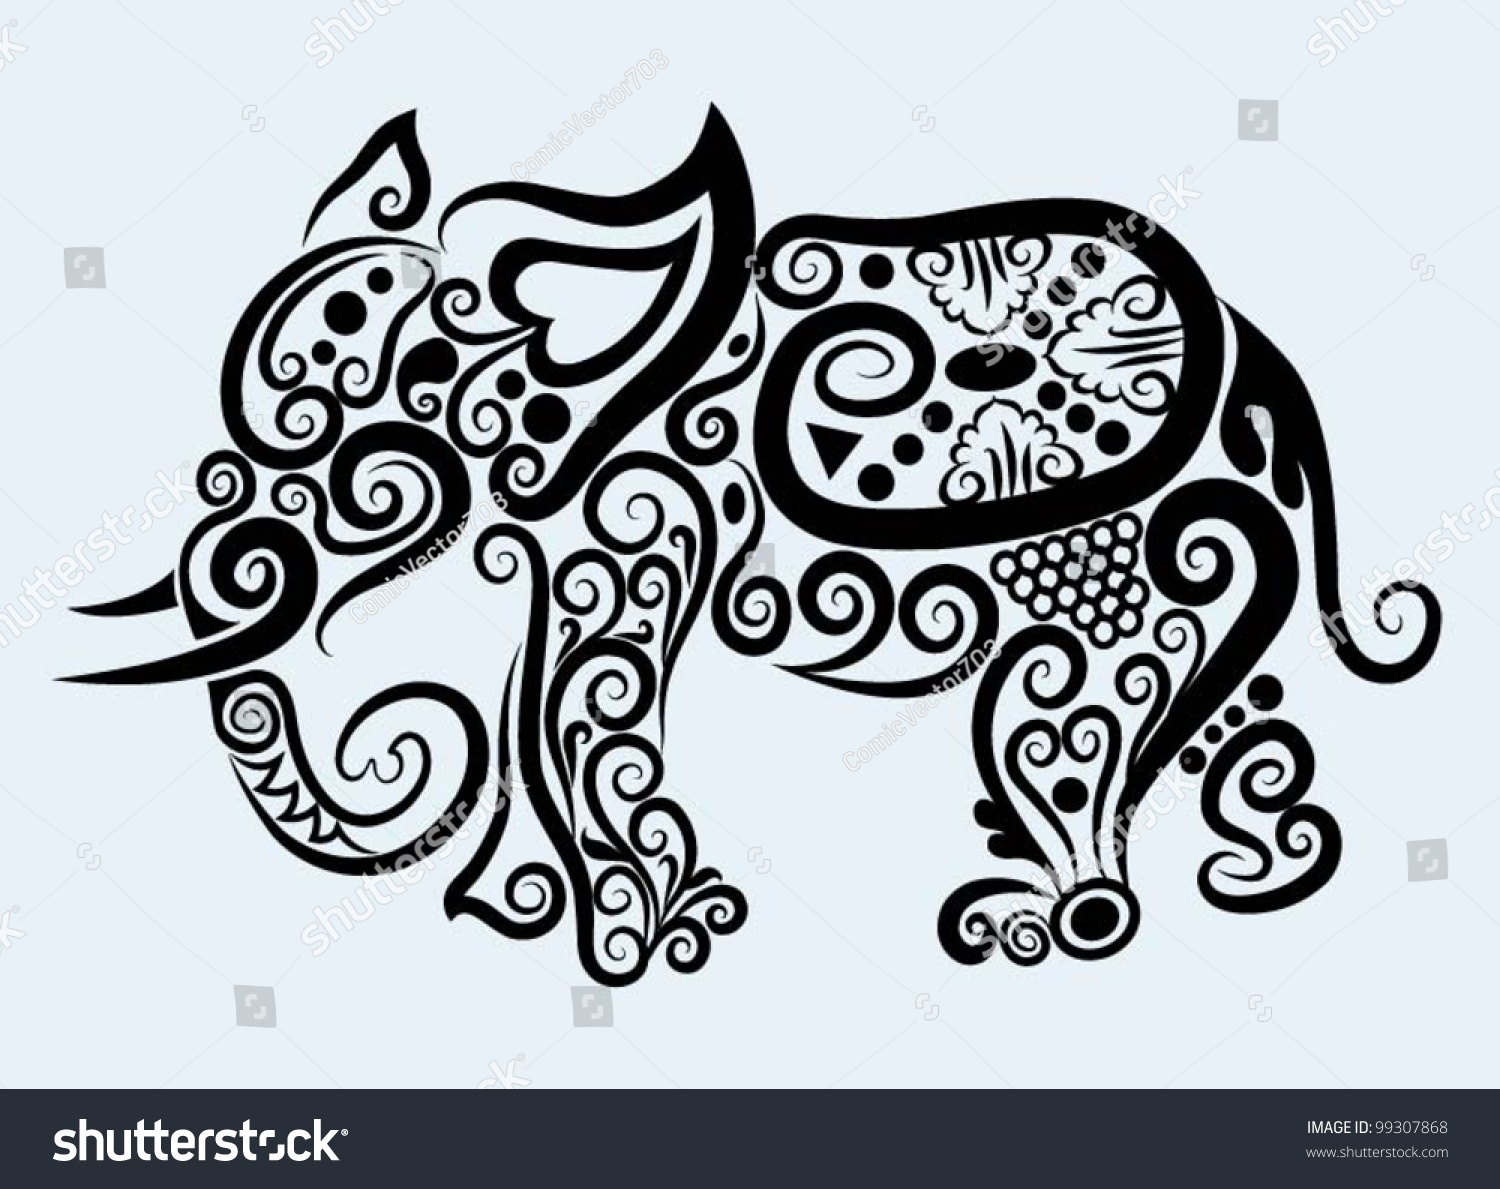 Decorative Elephant, Decorative Mammal Animal And Floral ...